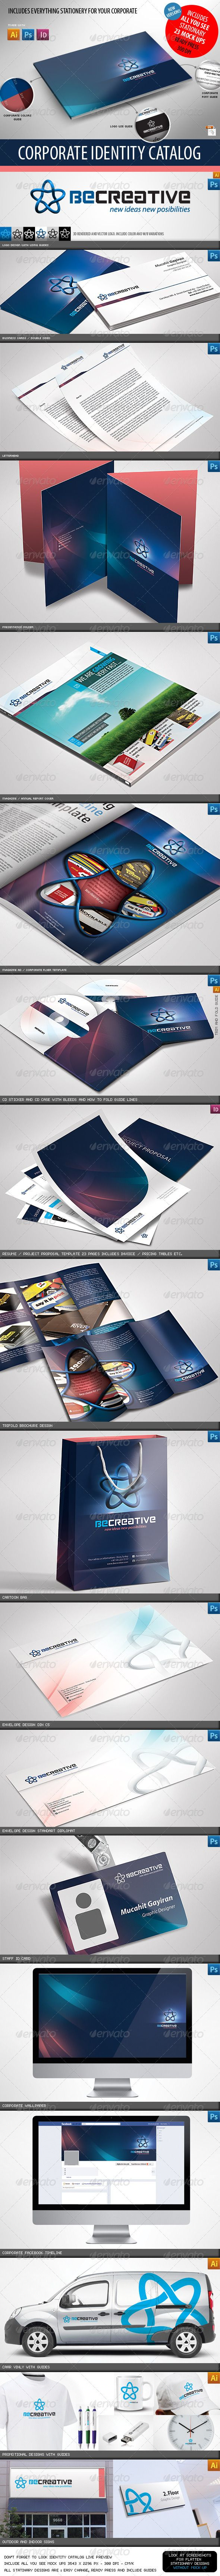 Retro Style Creative Agency Corporate Identity Templates